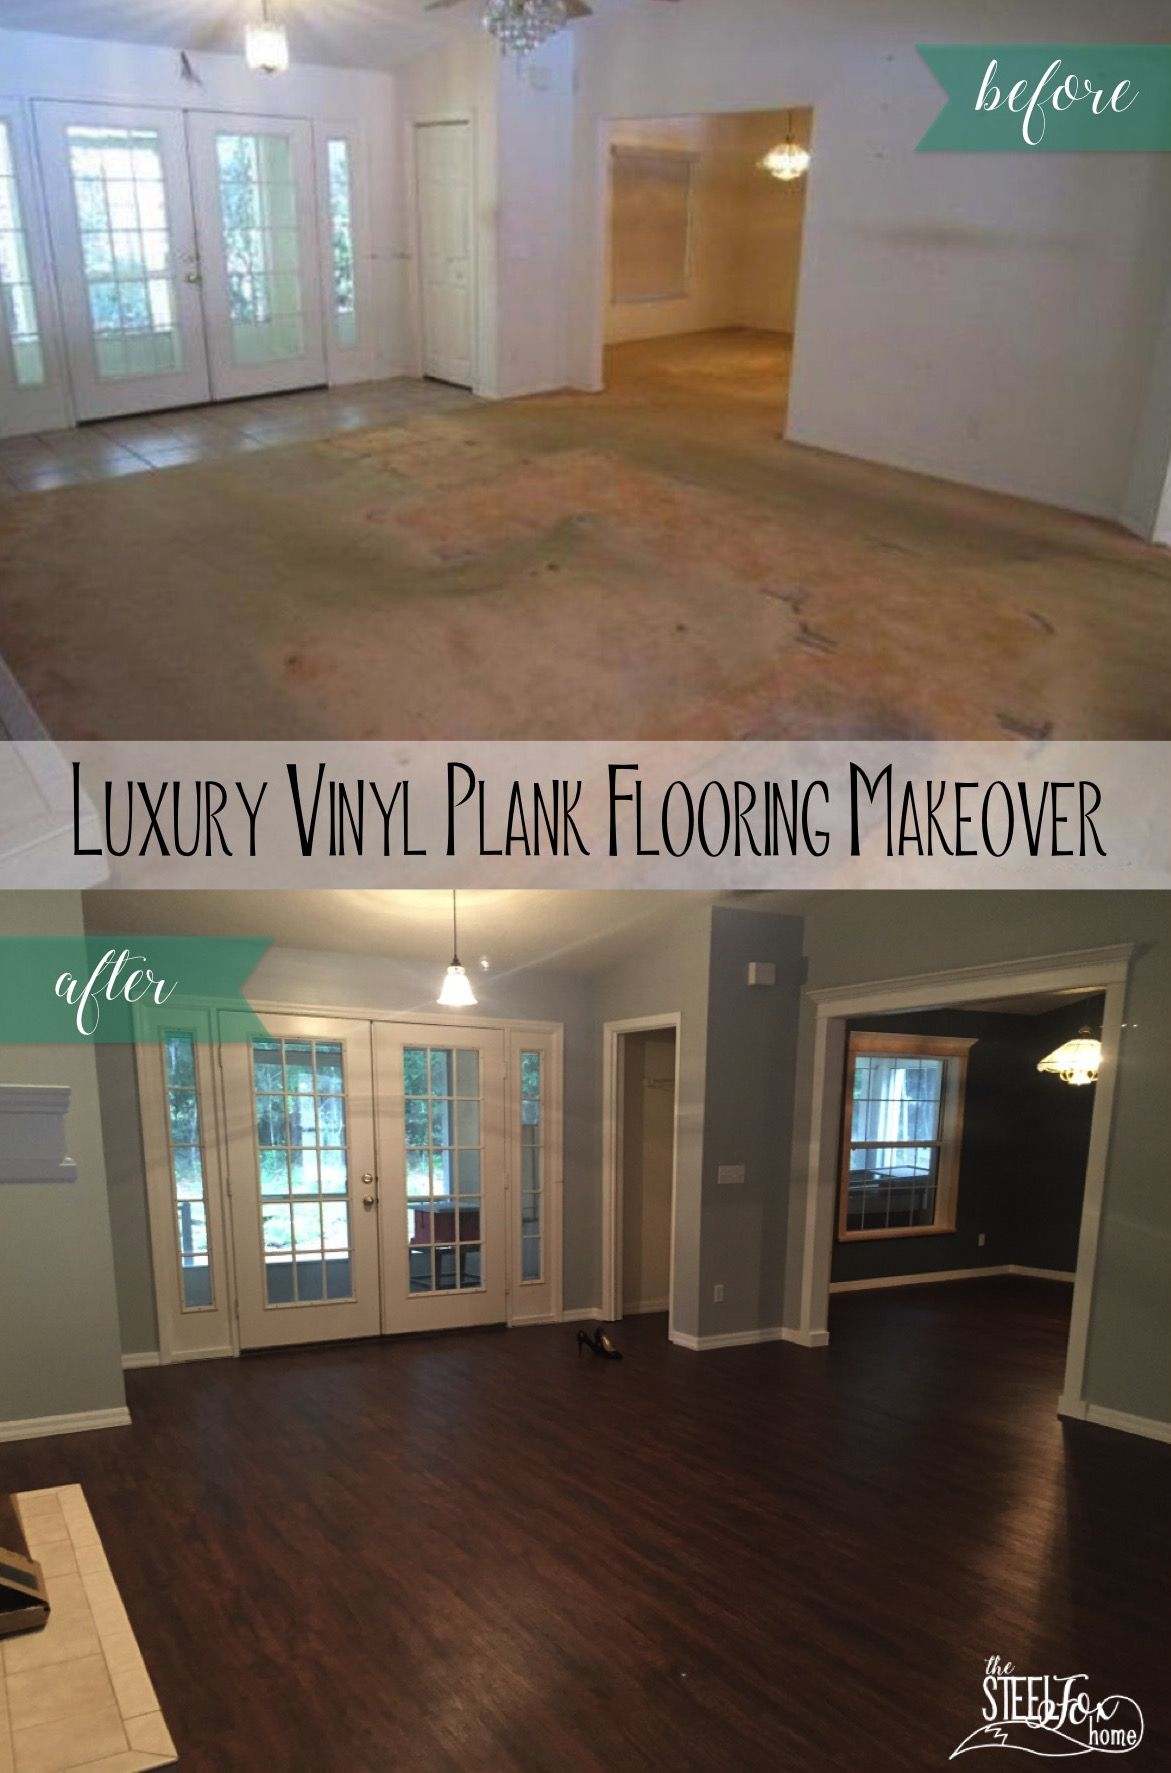 Luxury Vinyl Plank Wood Flooring Whole House Makeover Why We Choose Vinyl Pros And Cons And Our H Luxury Vinyl Plank Luxury Vinyl Plank Flooring Vinyl Plank